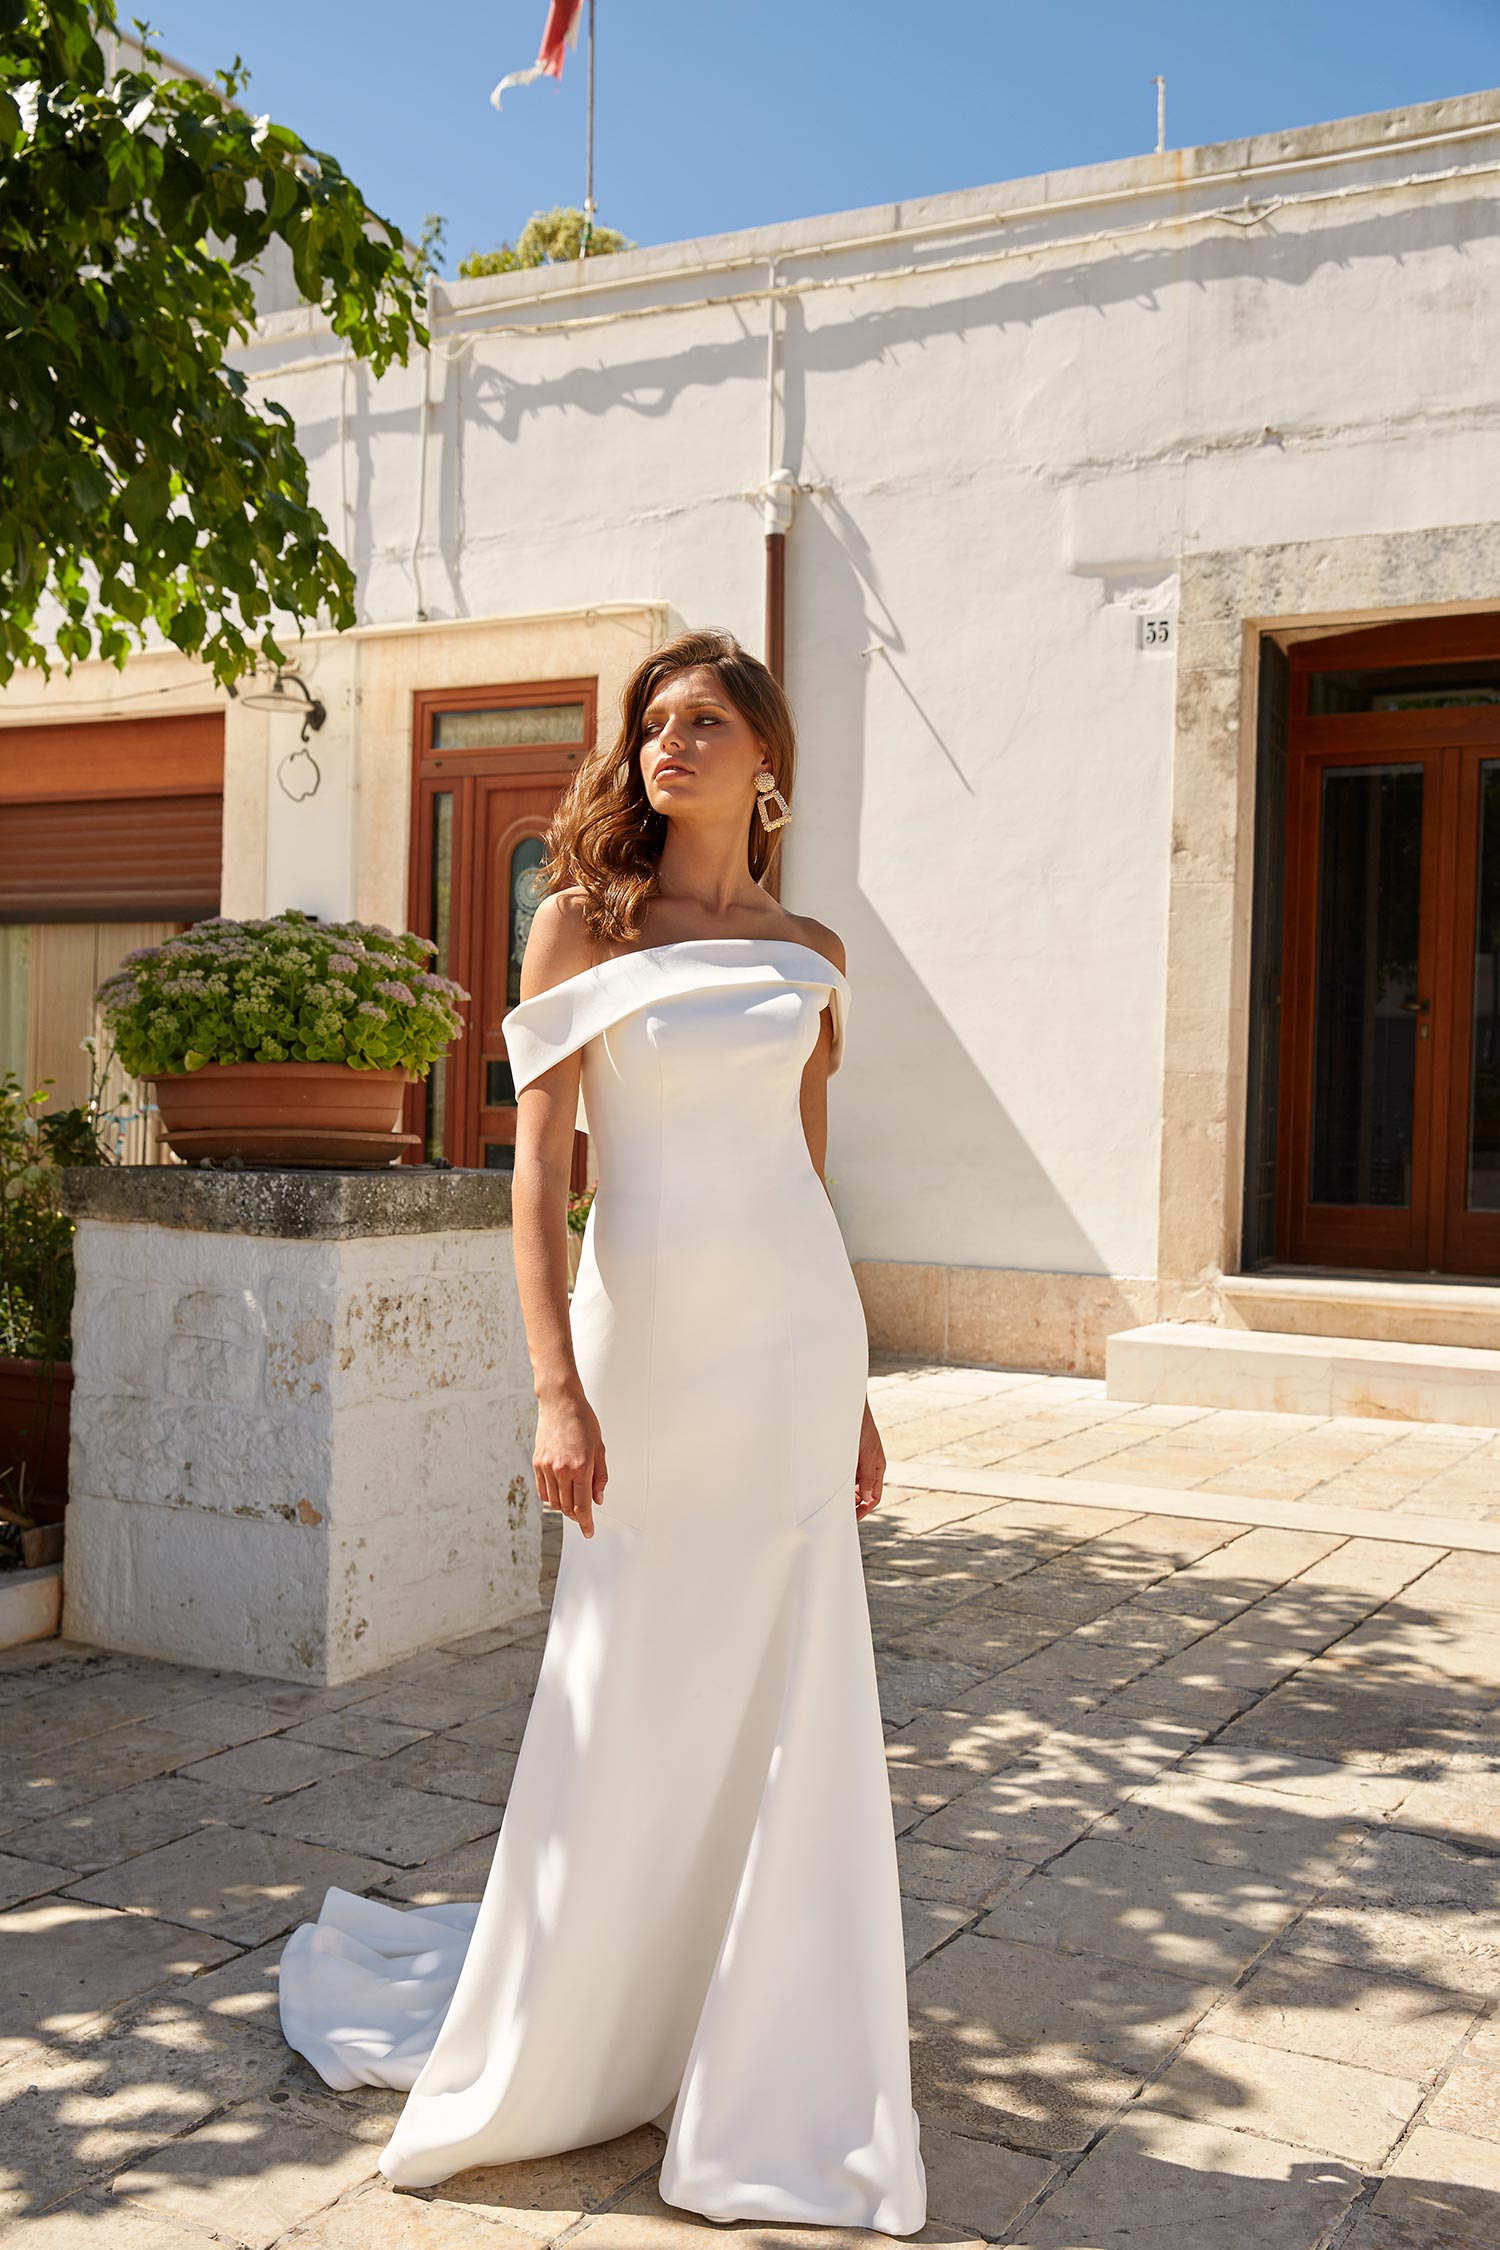 MILES-ML12885-CREPE-GOWN-WITH-OFF-THE-SHOULDER-STRAPS-ZIP-UP-BACK-WITH-DETACHABLE-CAPE-WEDDING-DRESS-MADI-LANE-BRIDAL1